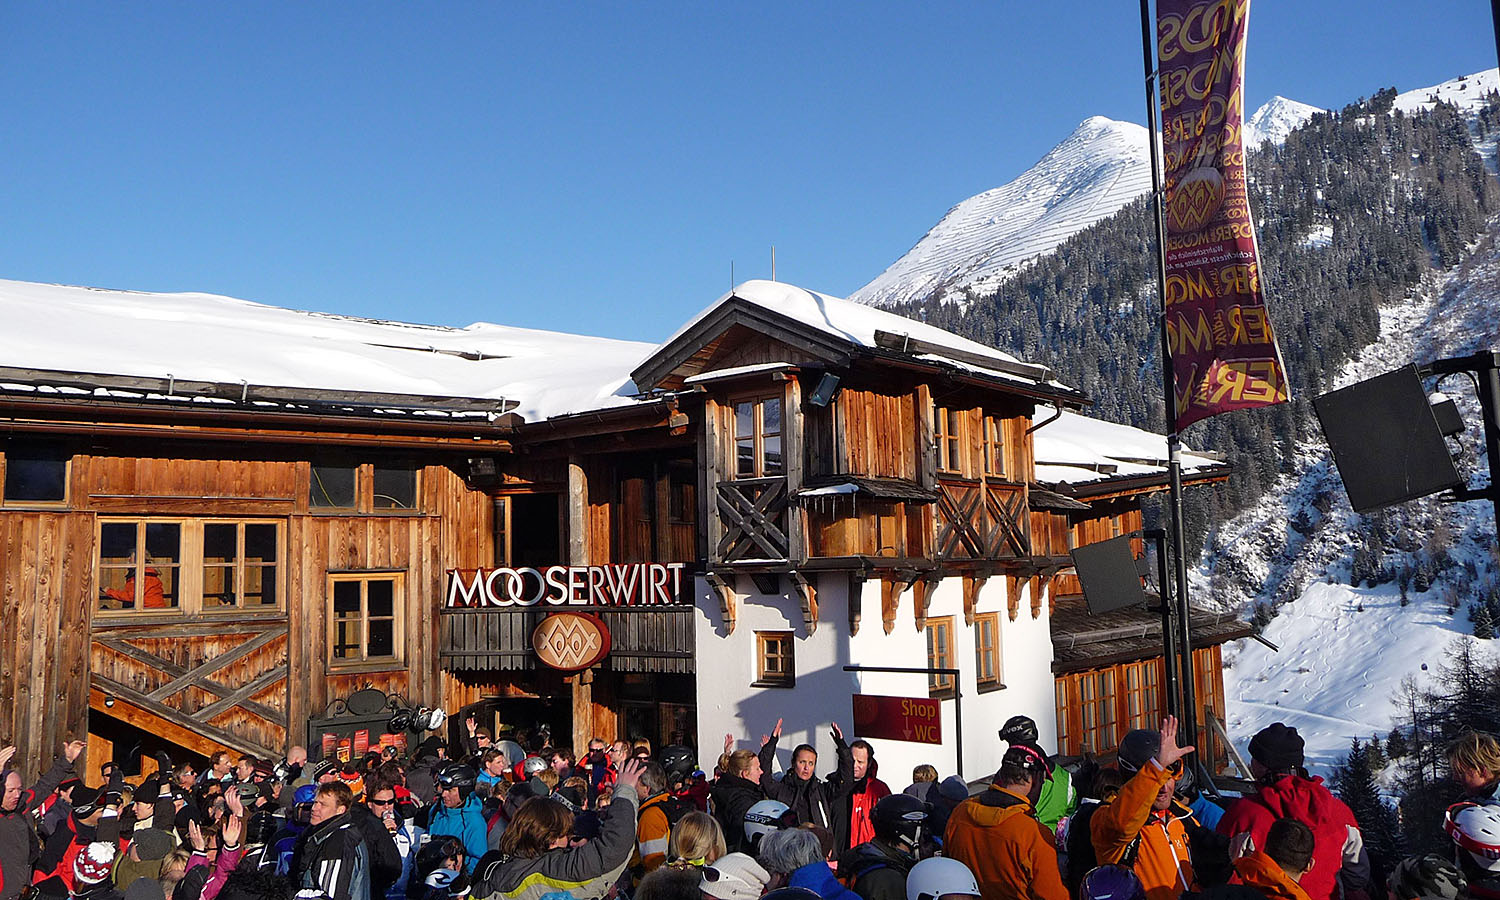 Après Ski At The Legendary Mooserwirt Get Lost Magazine